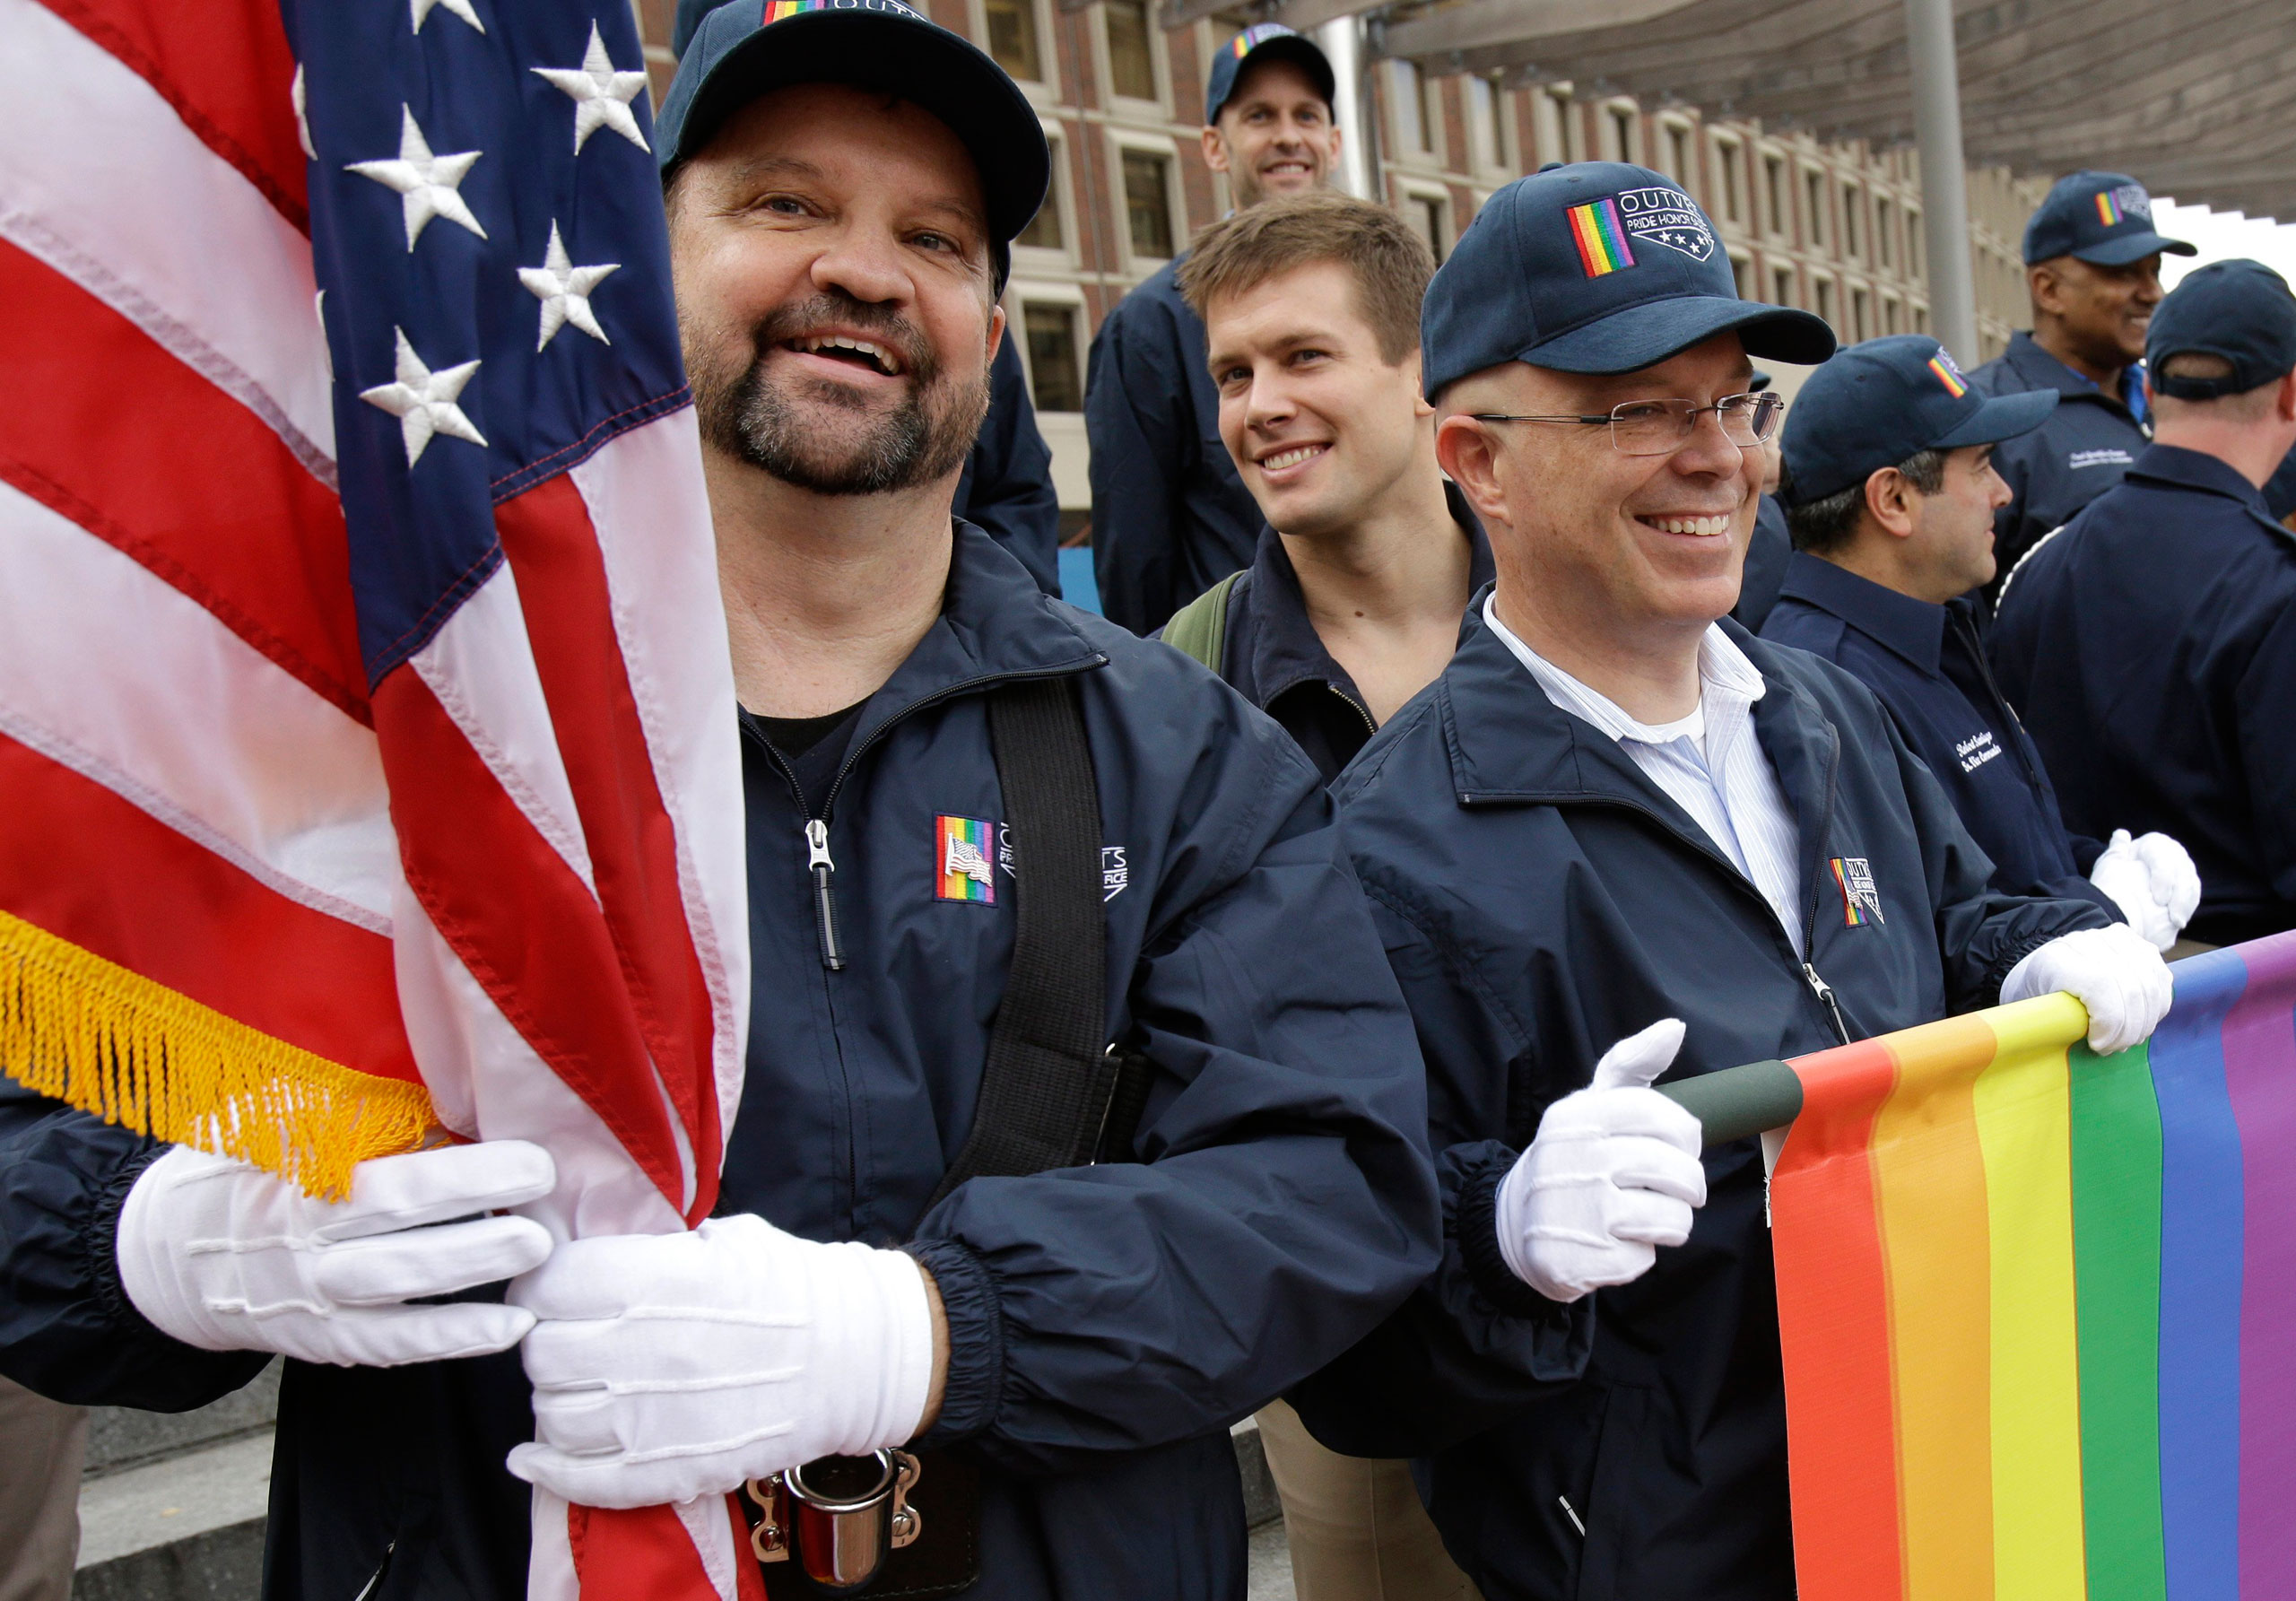 Retired U.S. Air Force Master Sgt. Eric Bullen, of Westborough, Mass., left, holds an American flag as U.S. Army veteran Ian Ryan, of Dennis, Mass., front right, rolls up an OutVets banner after marching with a group representing LGBT military veterans in a Veterans Day parade in Boston, Nov. 11, 2014. The organizers of Boston's annual St. Patrick's Day parade voted to allow the group of gay veterans along with a second group, Boston Pride, to march in this year's parade.